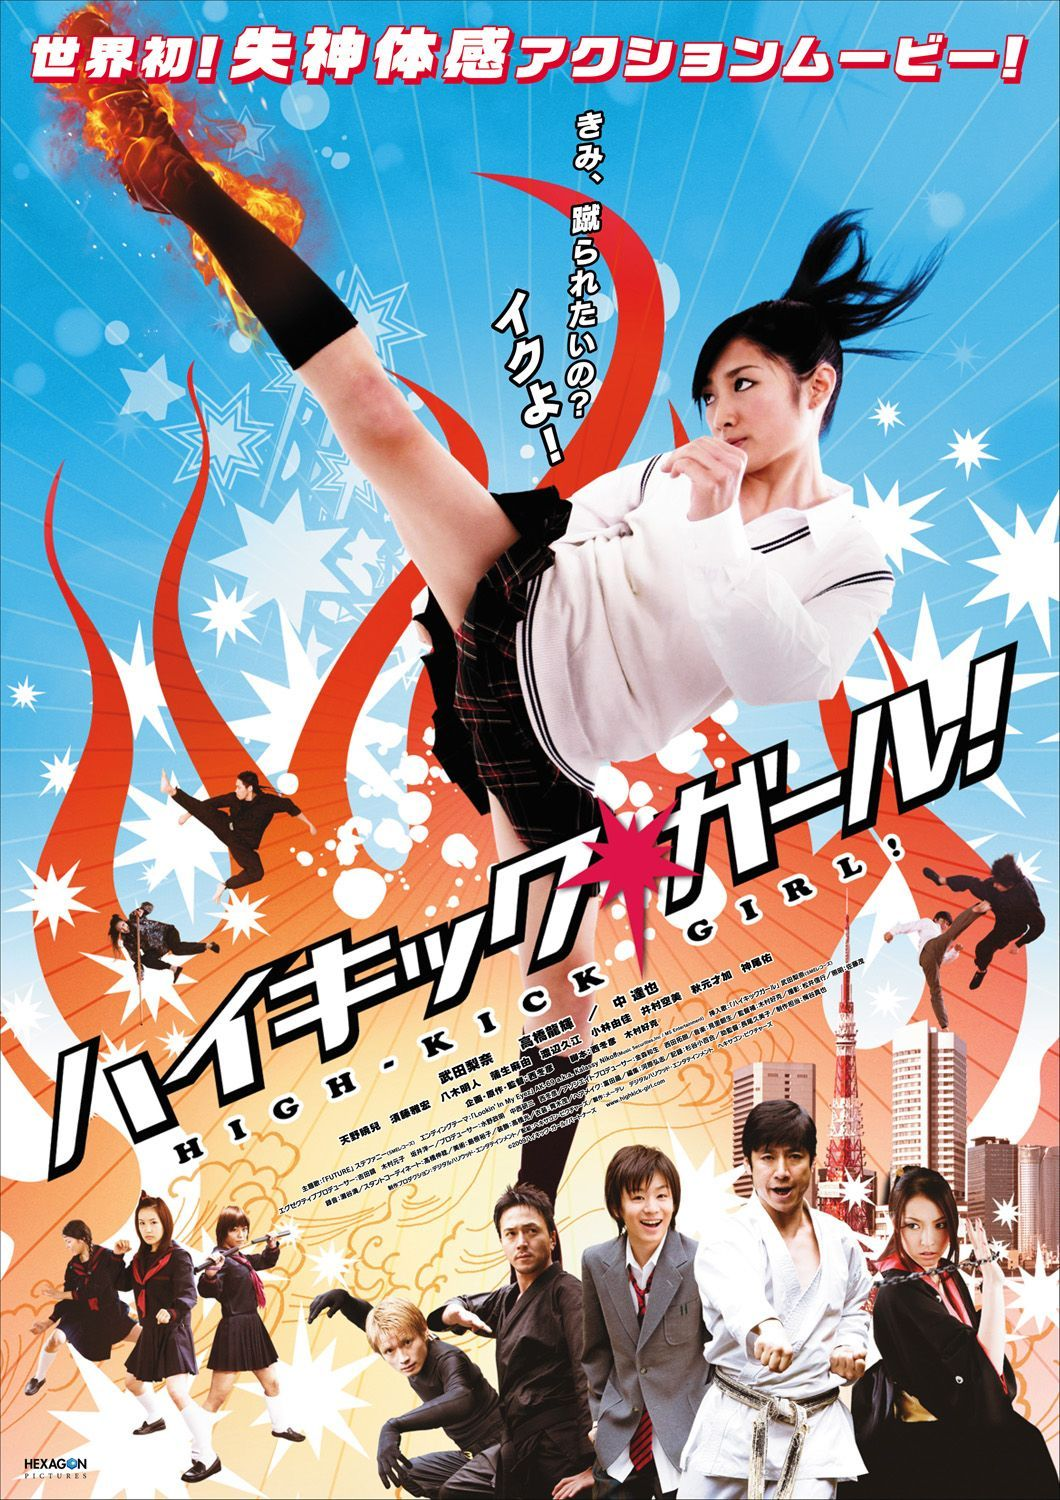 Kick High Girl Actually A Pretty Horrible Movie In Almost All Aspects The Only Redeeming Fact And Reason I Eve Kung Fu Movies Japanese Movie Movie Posters